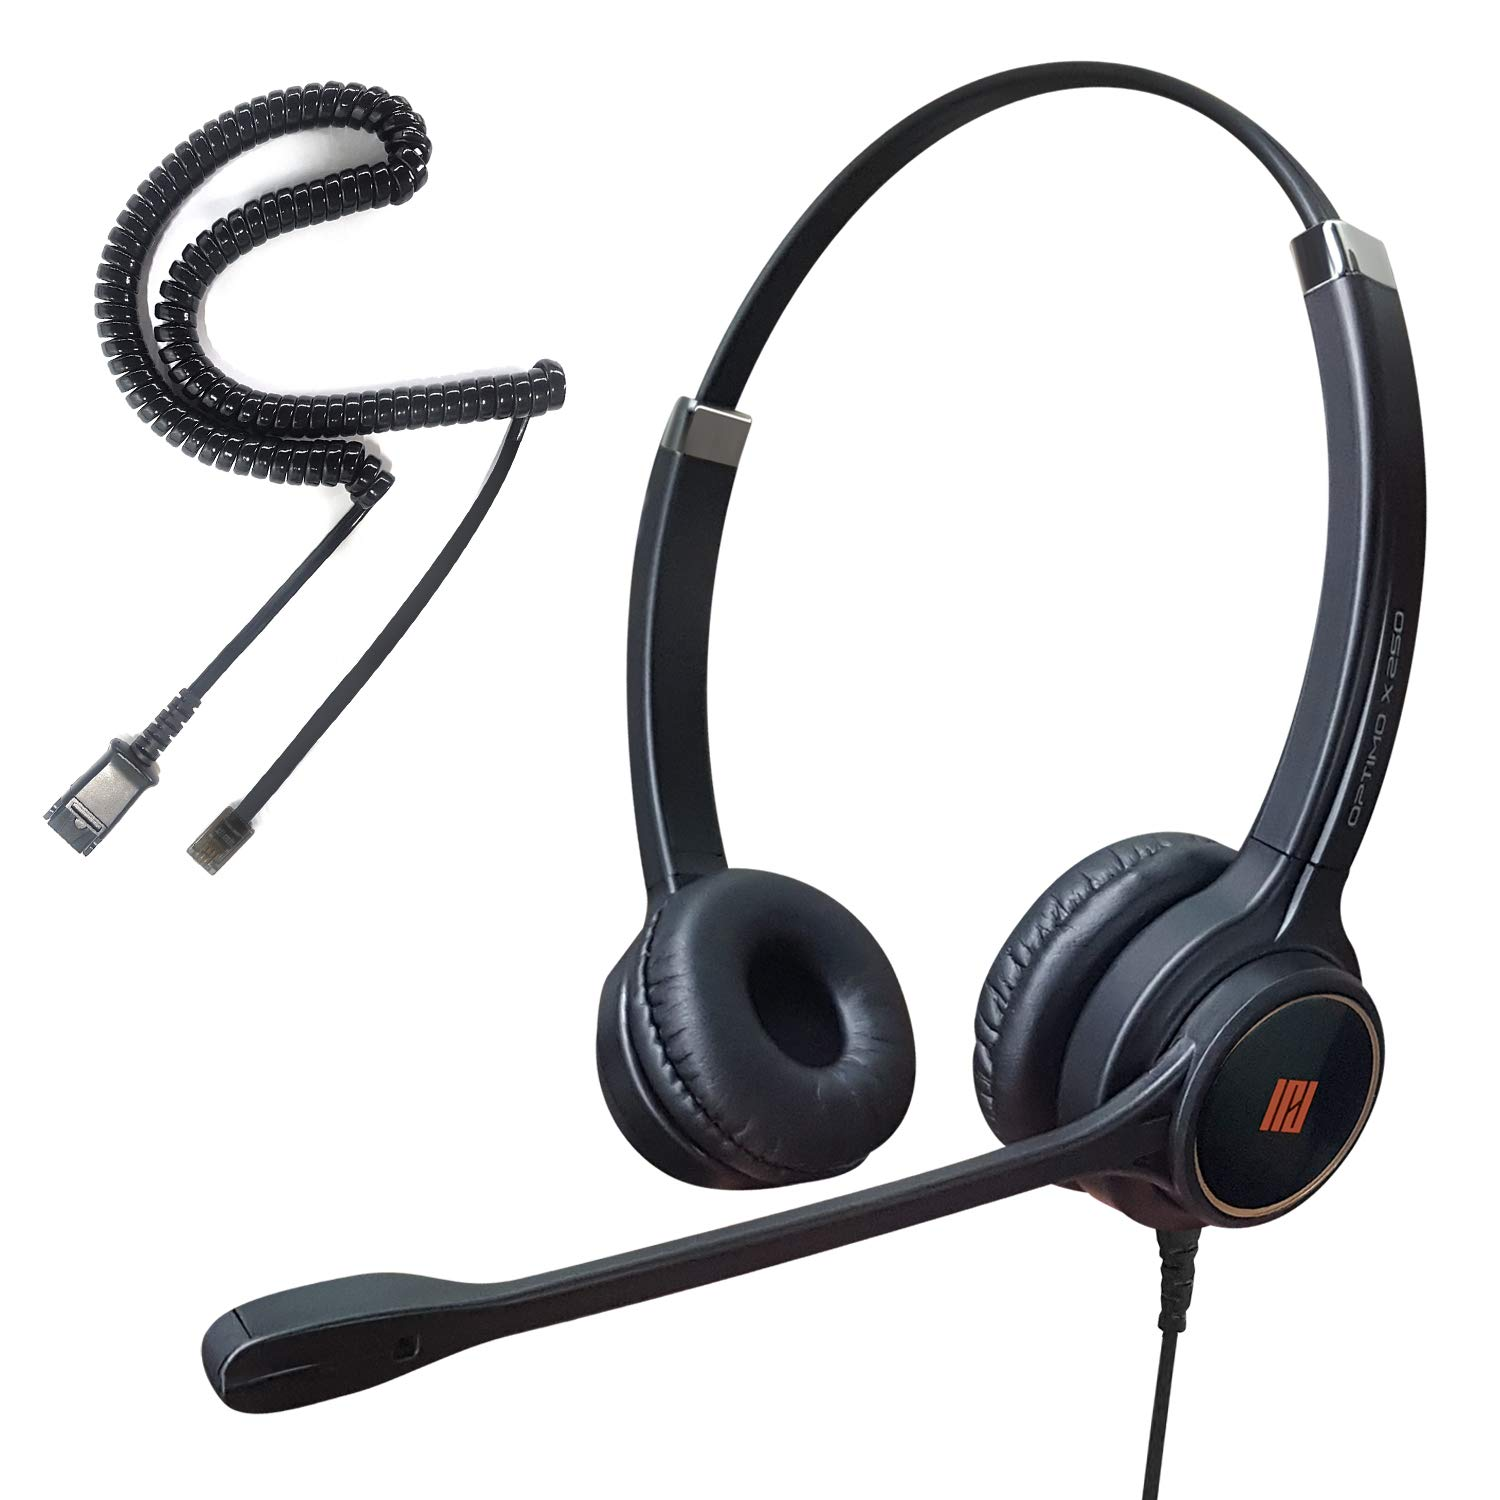 IPD IPH-255 Optimo-X Duo Ear Noise canceling,Corded Headset for Call Center,Office and Landline Phones w U10P Bottom Cable w RJ9 Jack Works with Poycom,Avaya,Nortel, Mitel and Most IP Phones